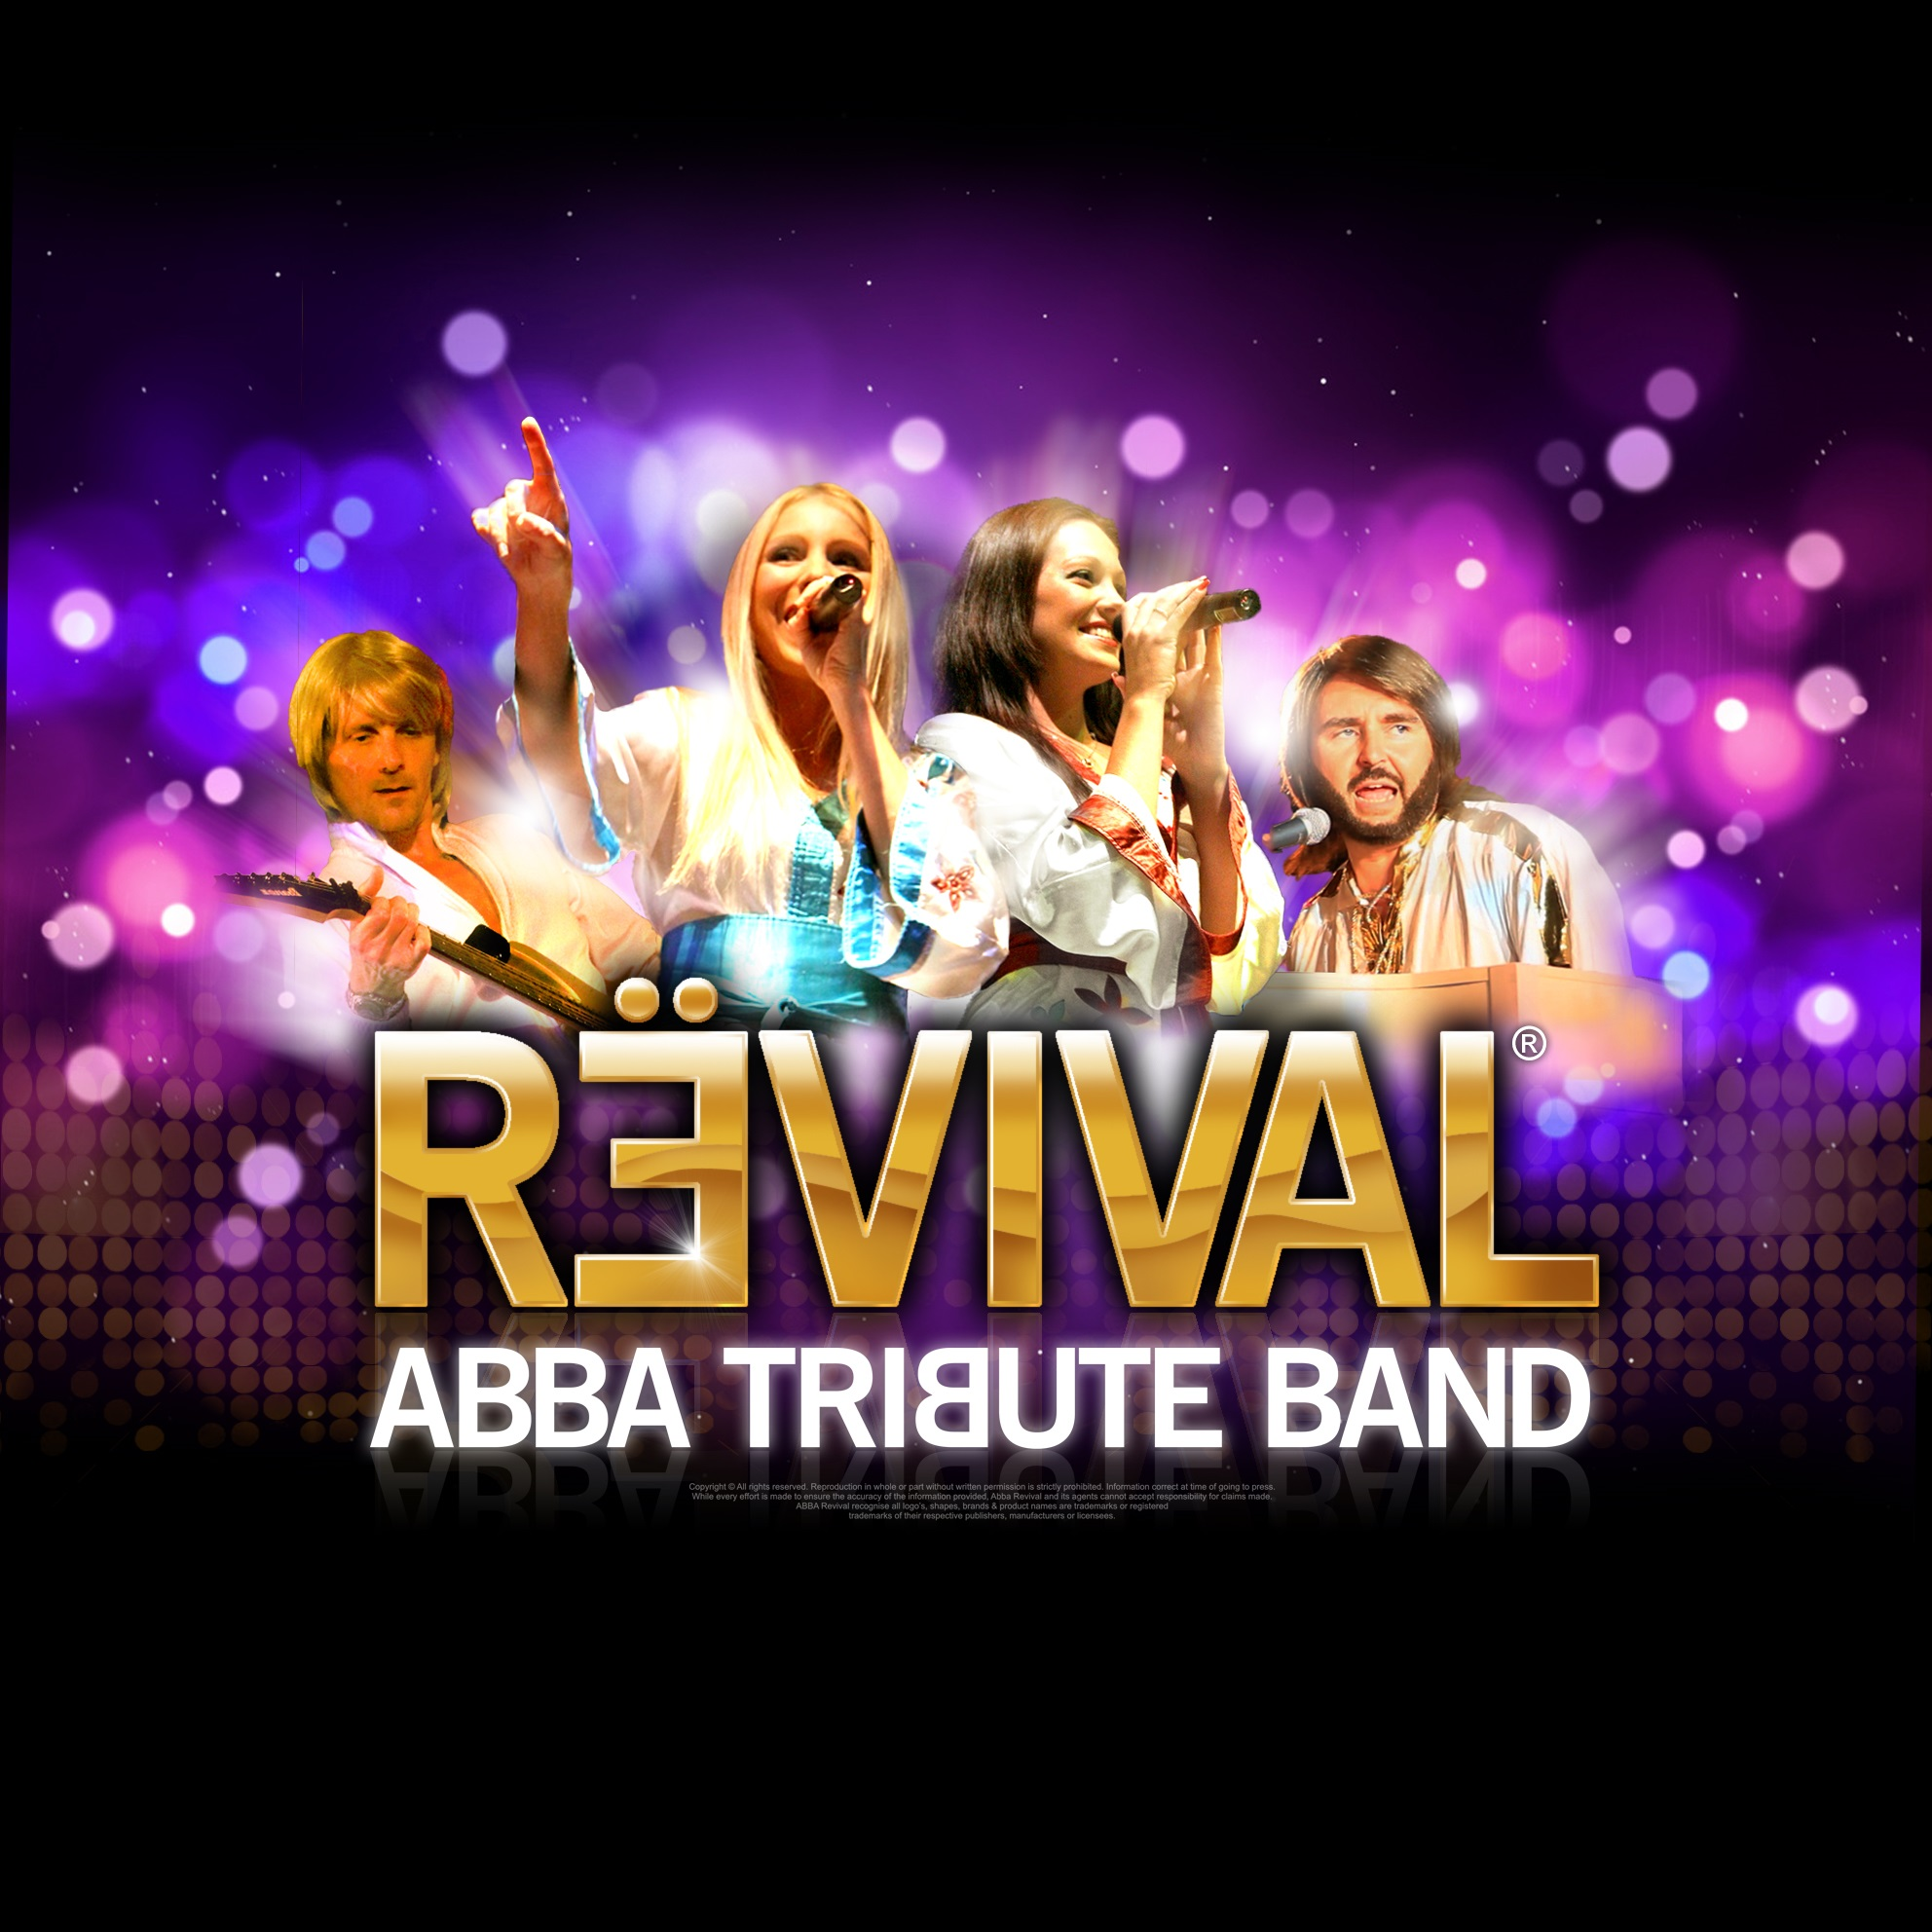 Top ABBA tribute band